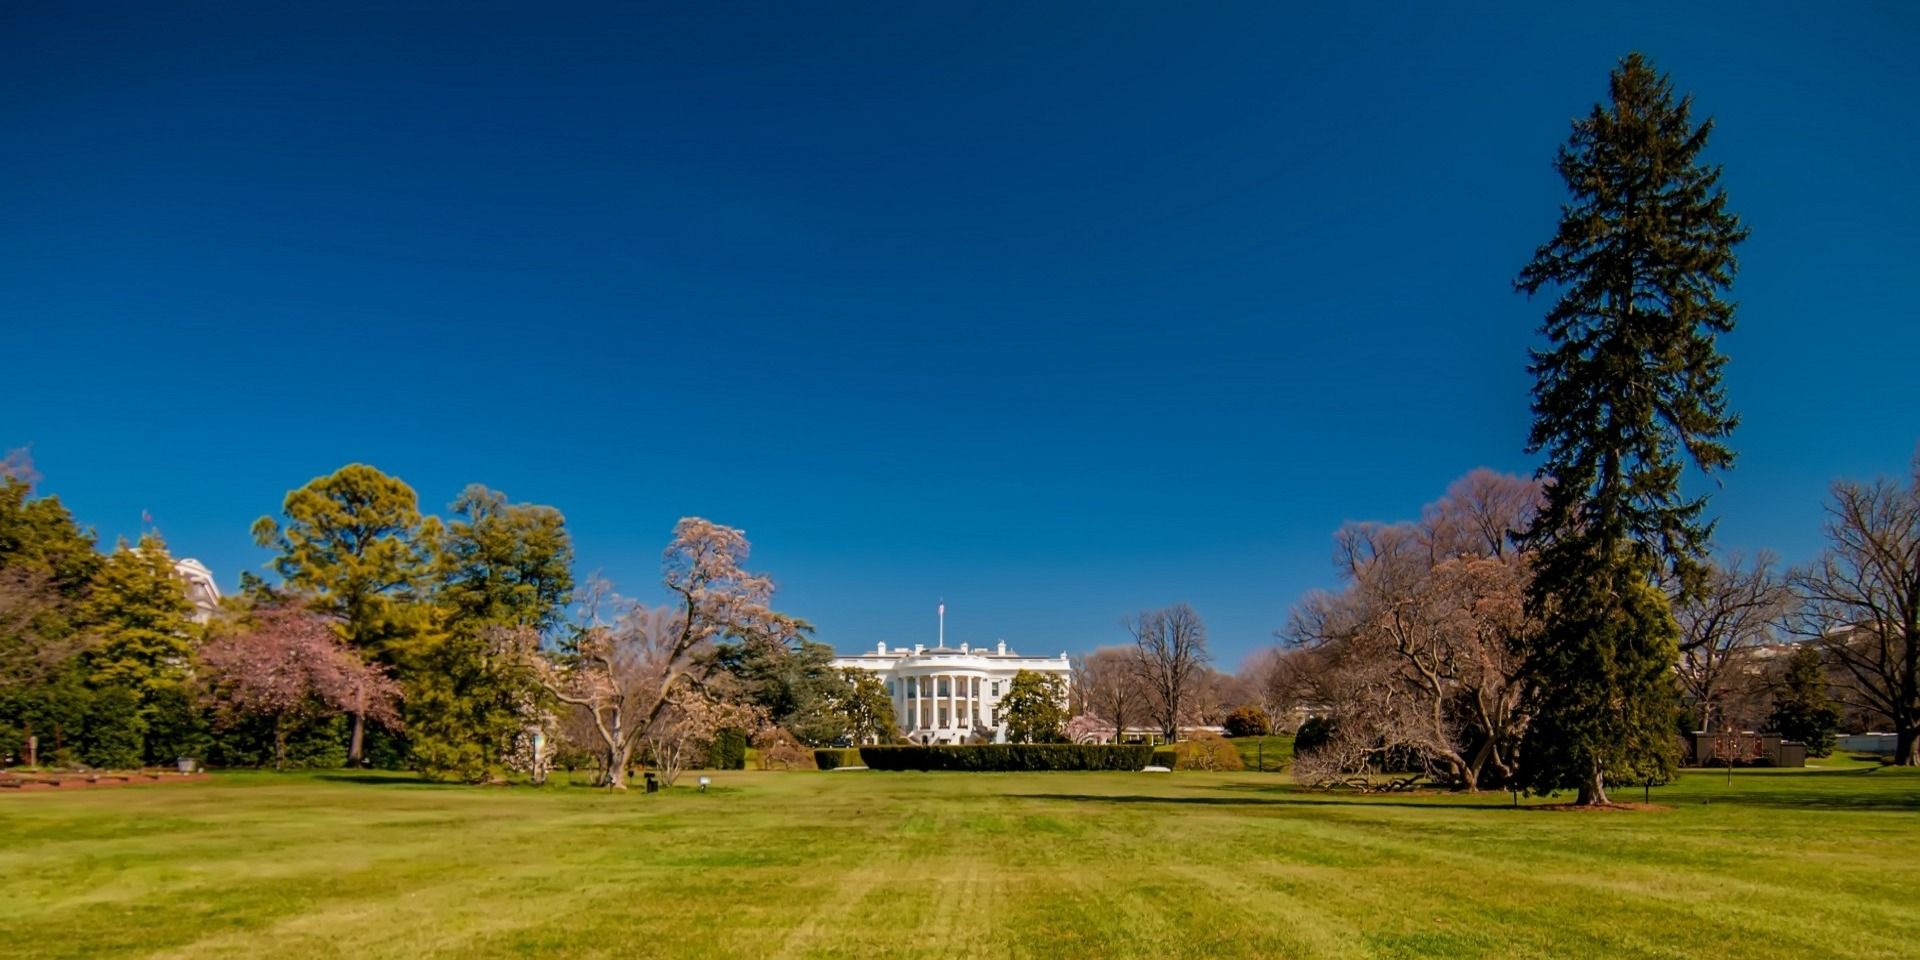 White House Lawn, Washington, District of Columbia